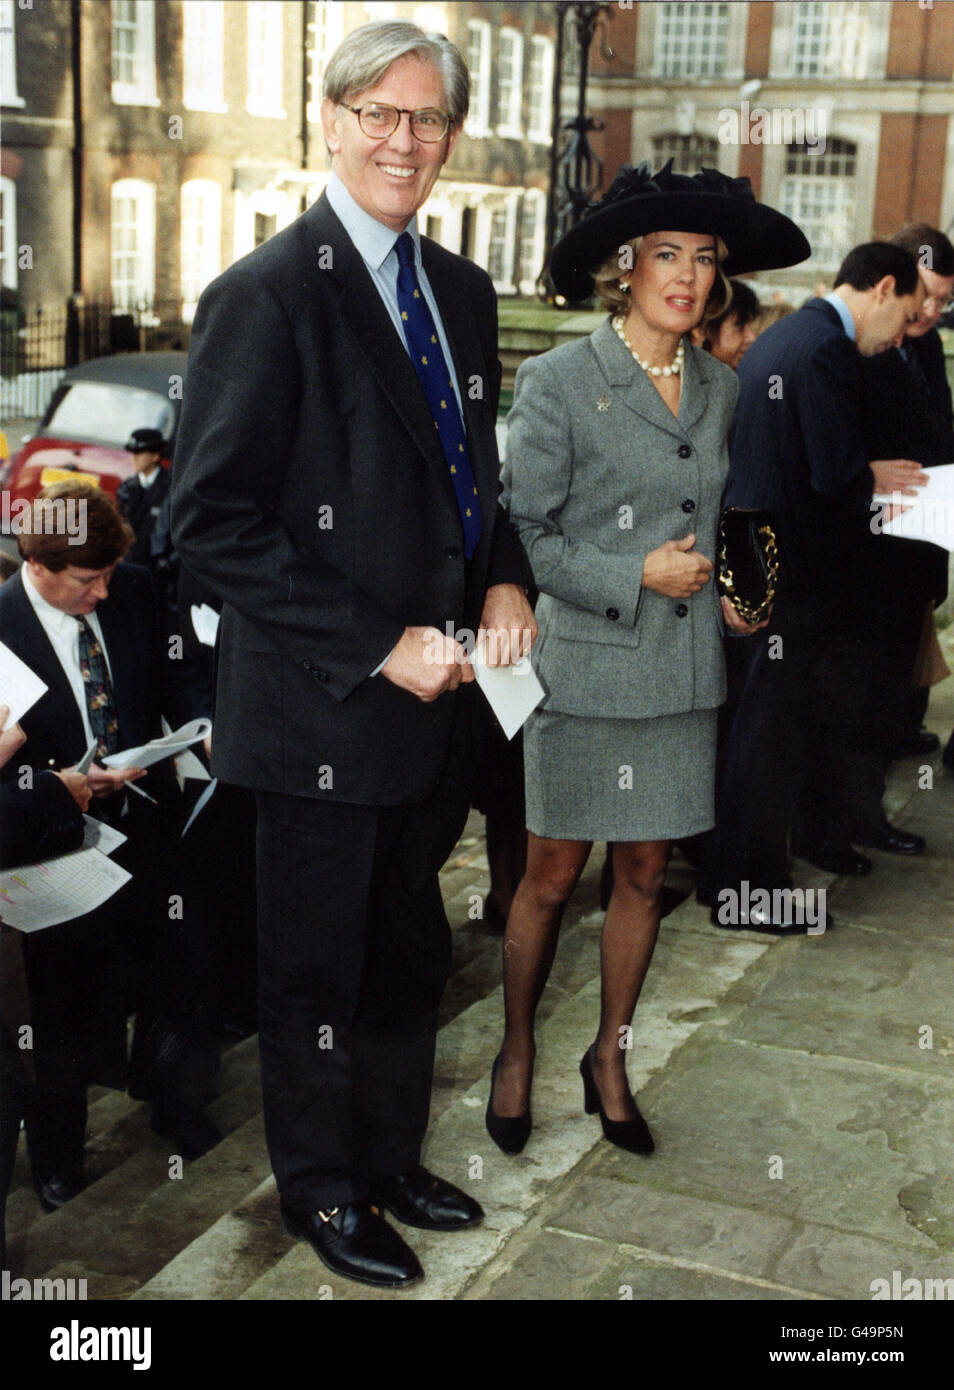 BILL CASH AND WIFE Stock Photo...